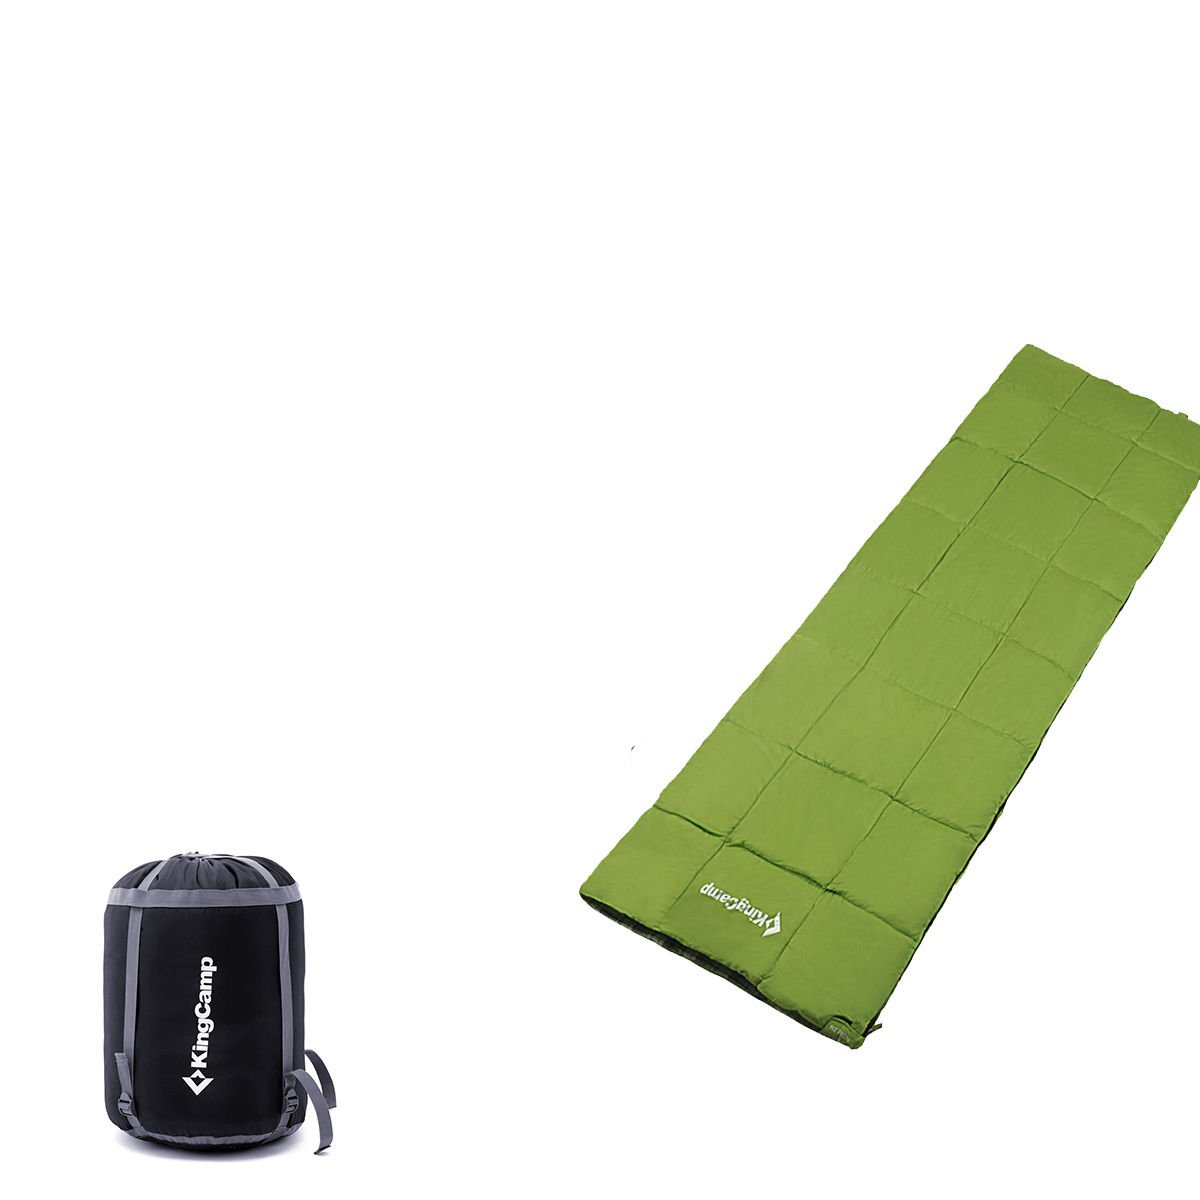 Envelope Single/Double Multi Color Flannel Sleeping Bag With Carry Case